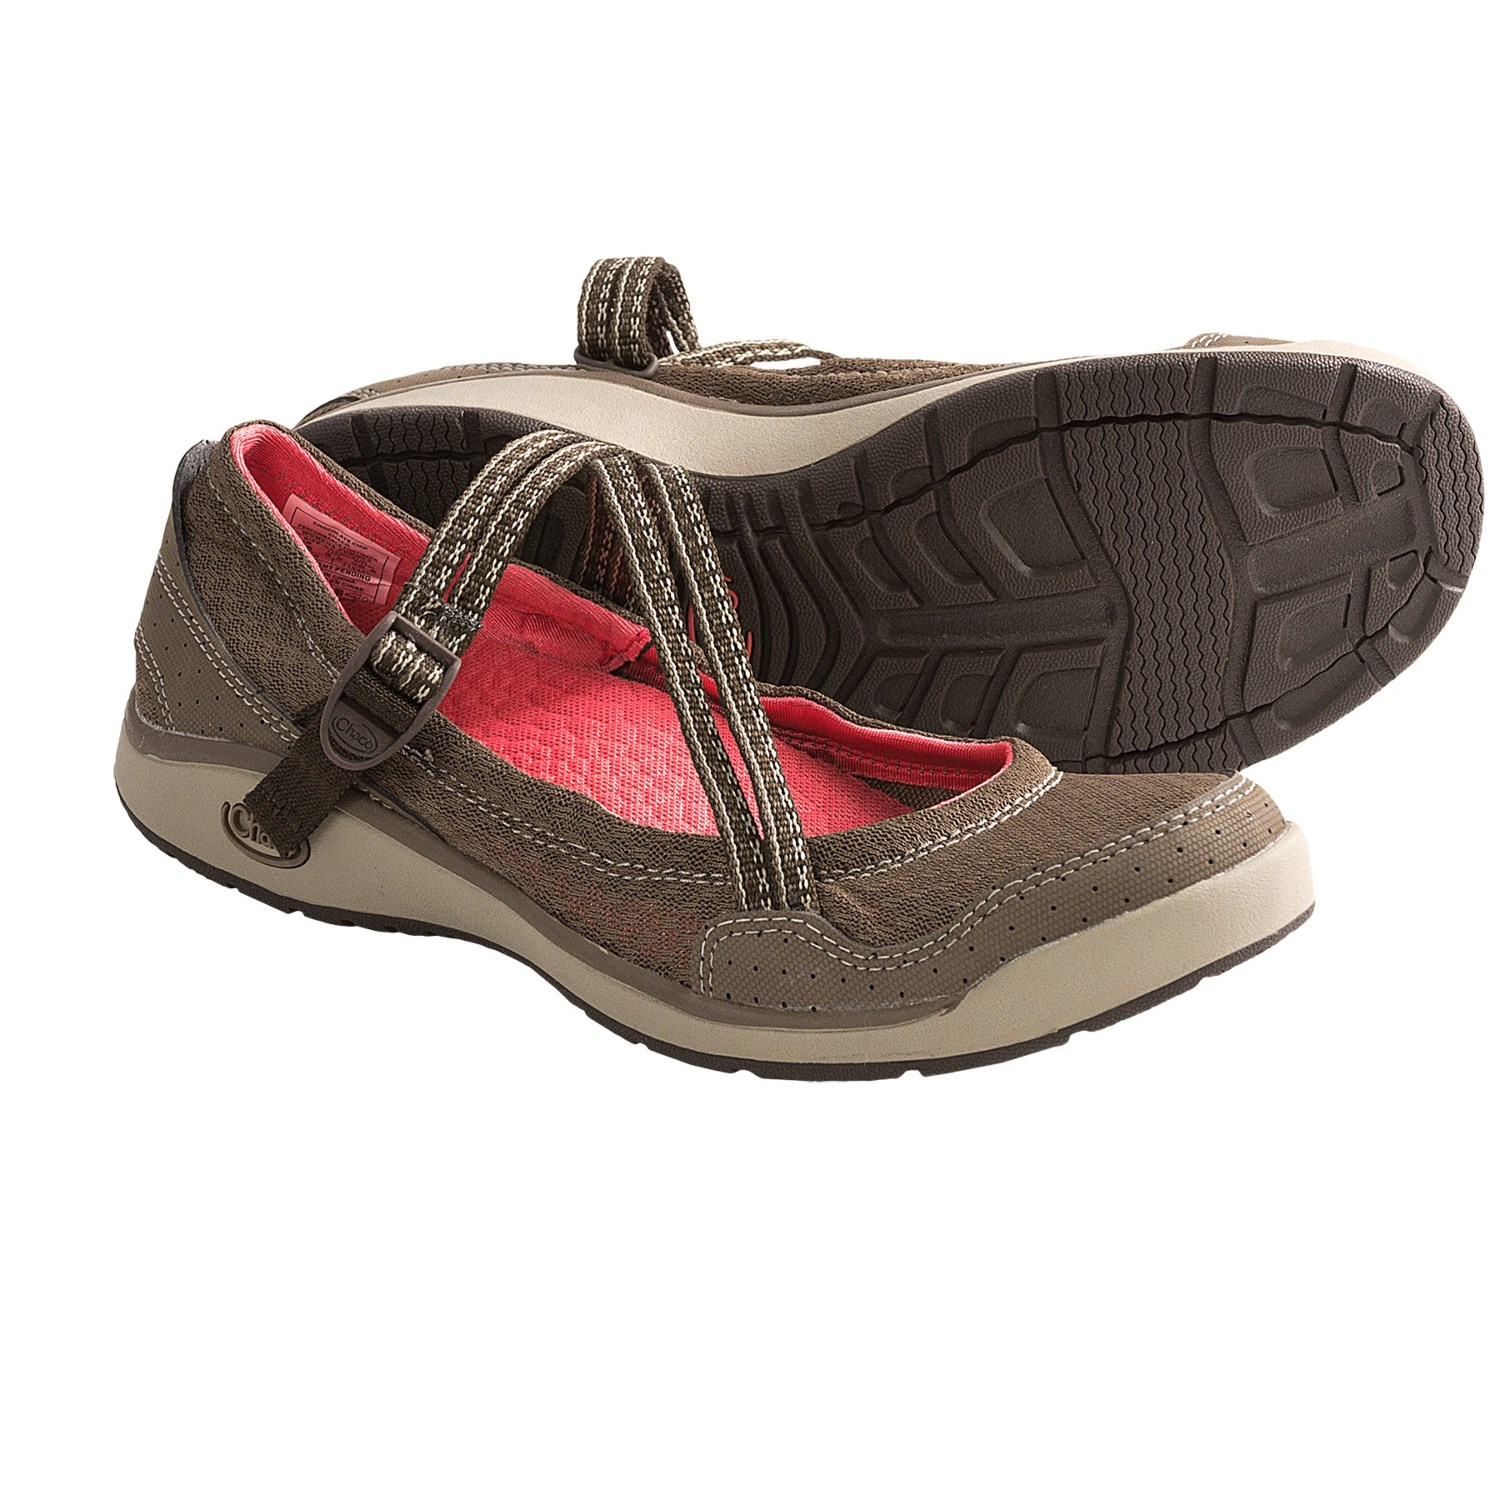 Women's Mary Jane Shoes. Showing 48 of results that match your query. Search Product Result. Womens Ladies Mid Wedge Heel Mary Jane Hotel Work Strap Shoes Ballet Cotton Flat Dancing shoes. Product - Meigar Women Work Shoes Casual Shoes Mary Jane Shoes Ballerina Flats. Reduced Price. Product Image.